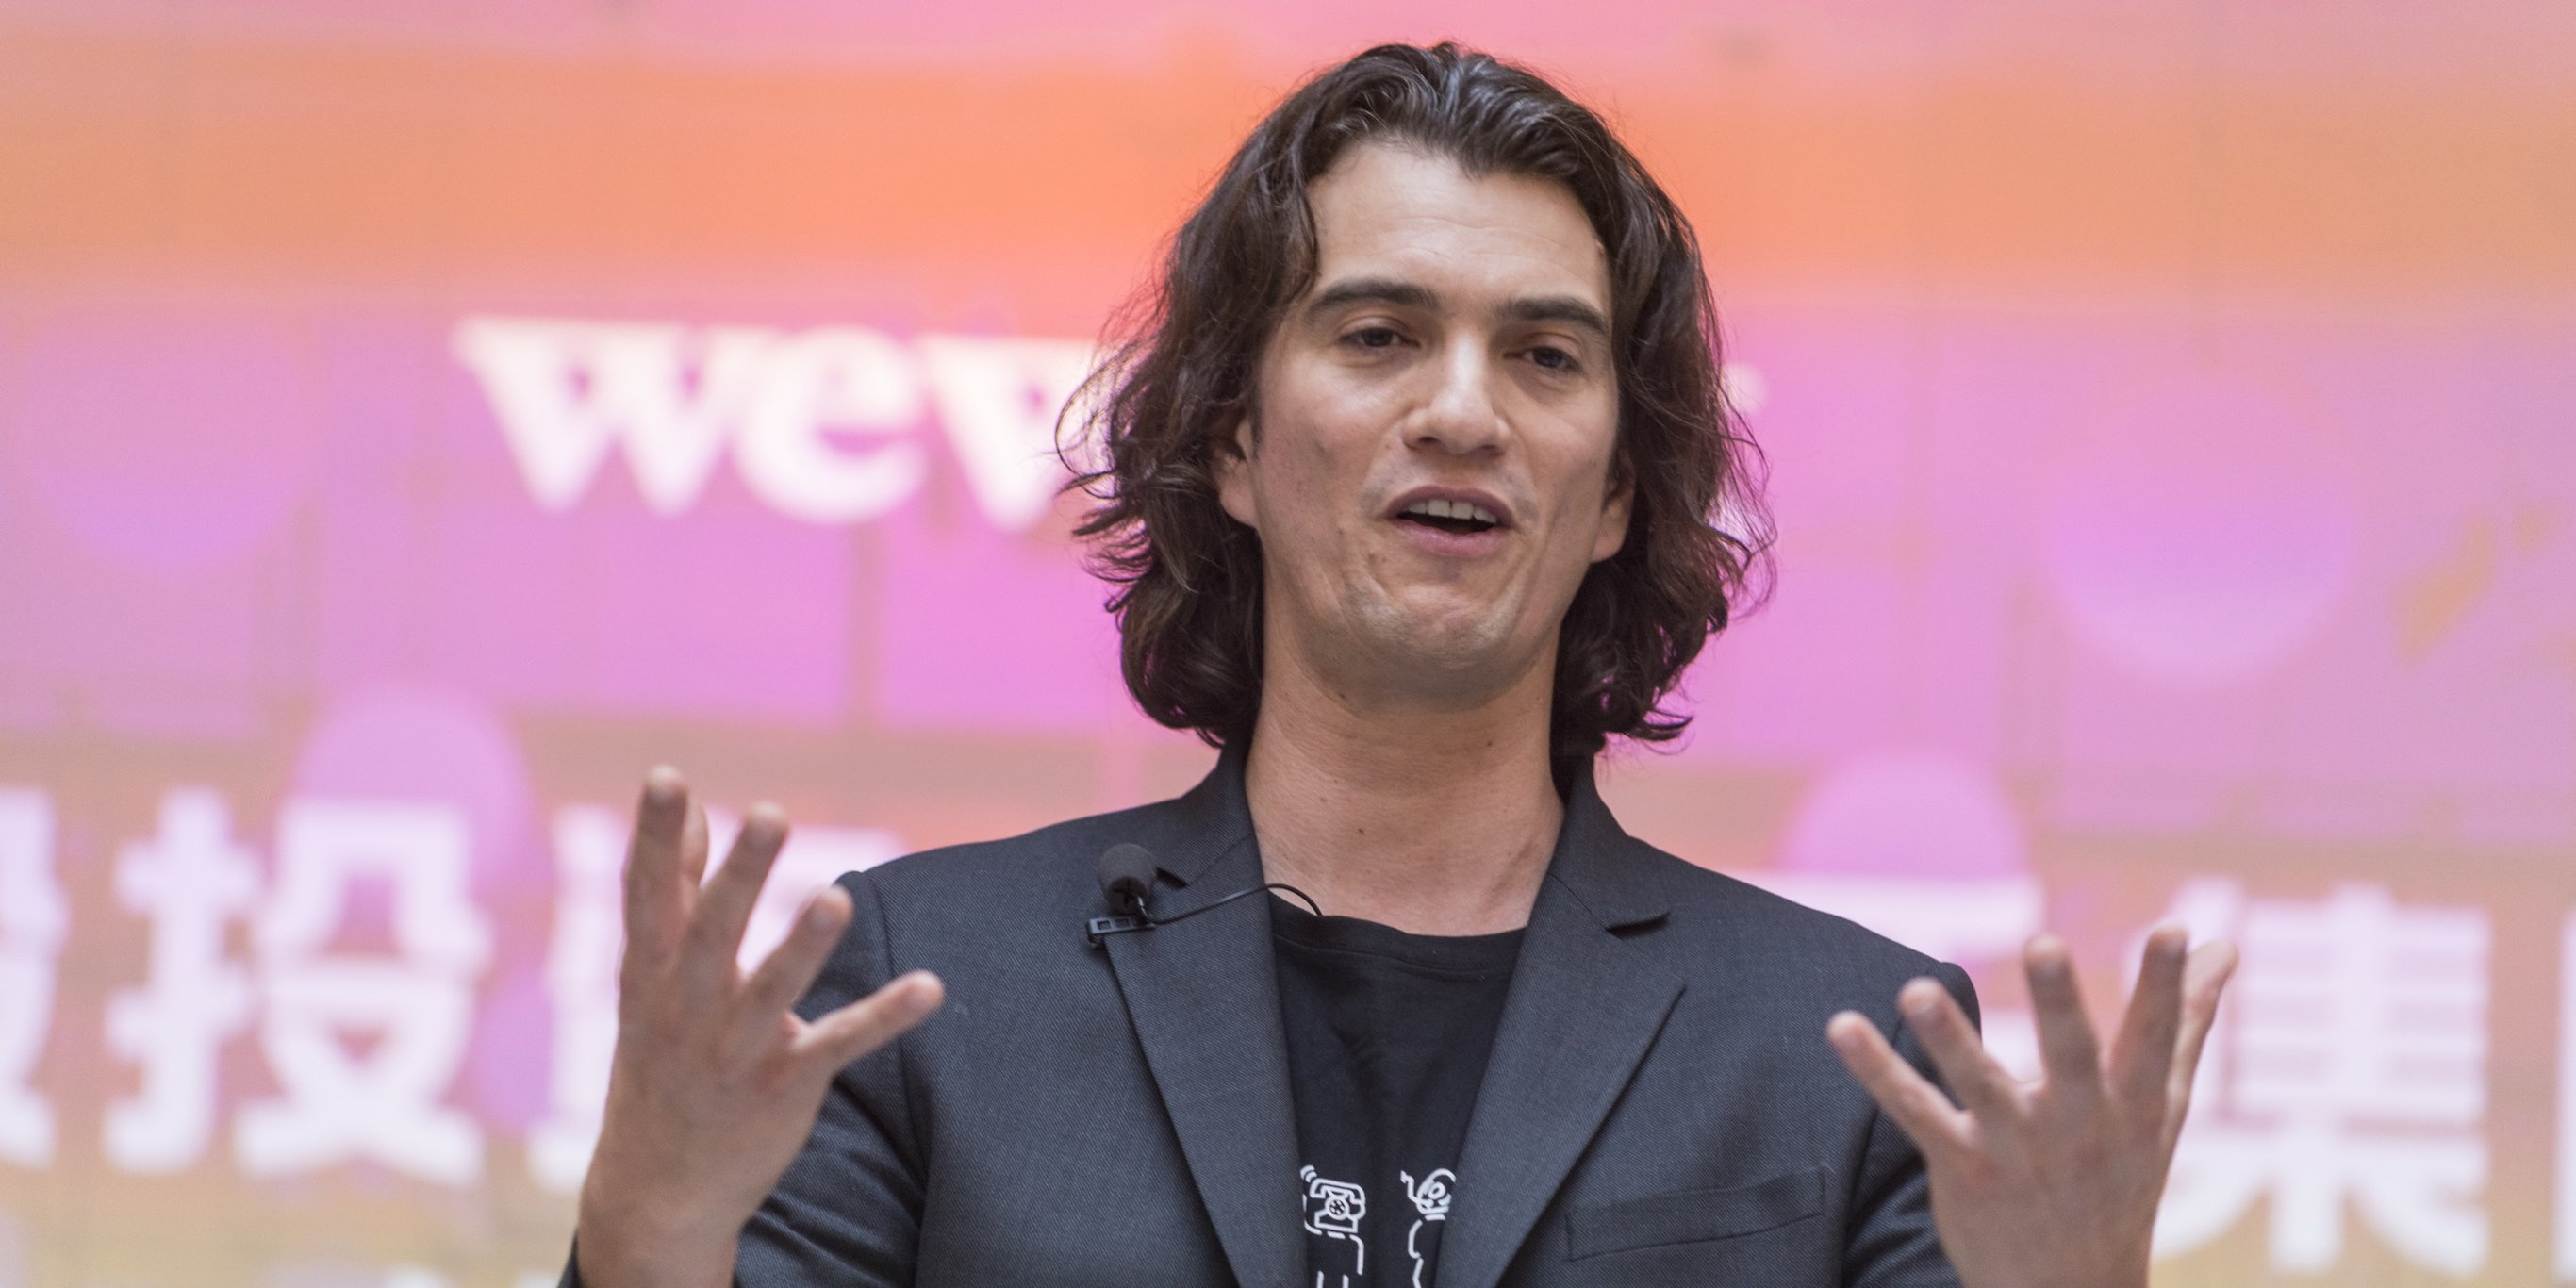 WeWork CEO Adam Neumann may be asked to step down after the company had to delay its IPO. Here are 9 other founders who were pushed out of the companies they started.